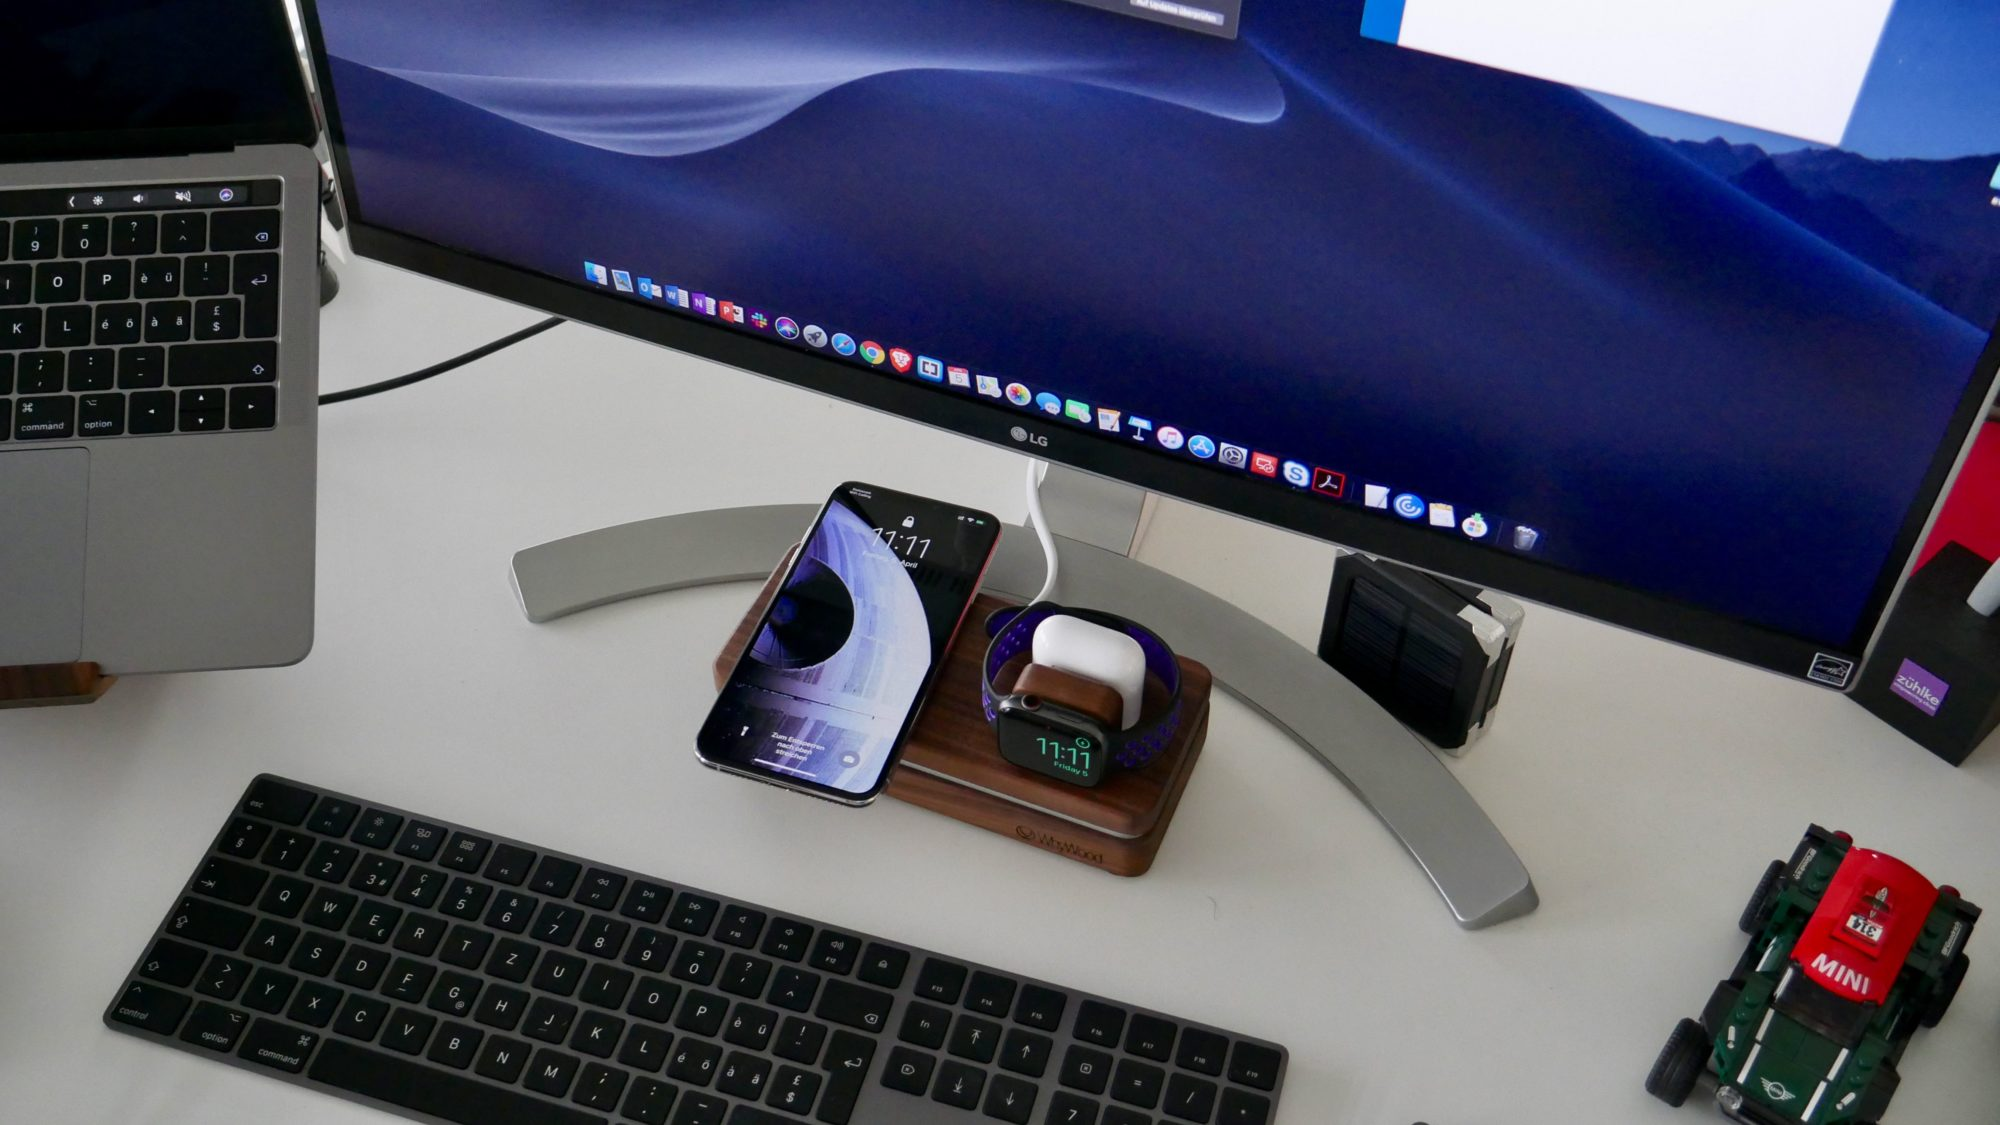 WhyWood Dockit W3 Qi-Ladestation aus Holz für iPhone, Apple Watch und AirPods.